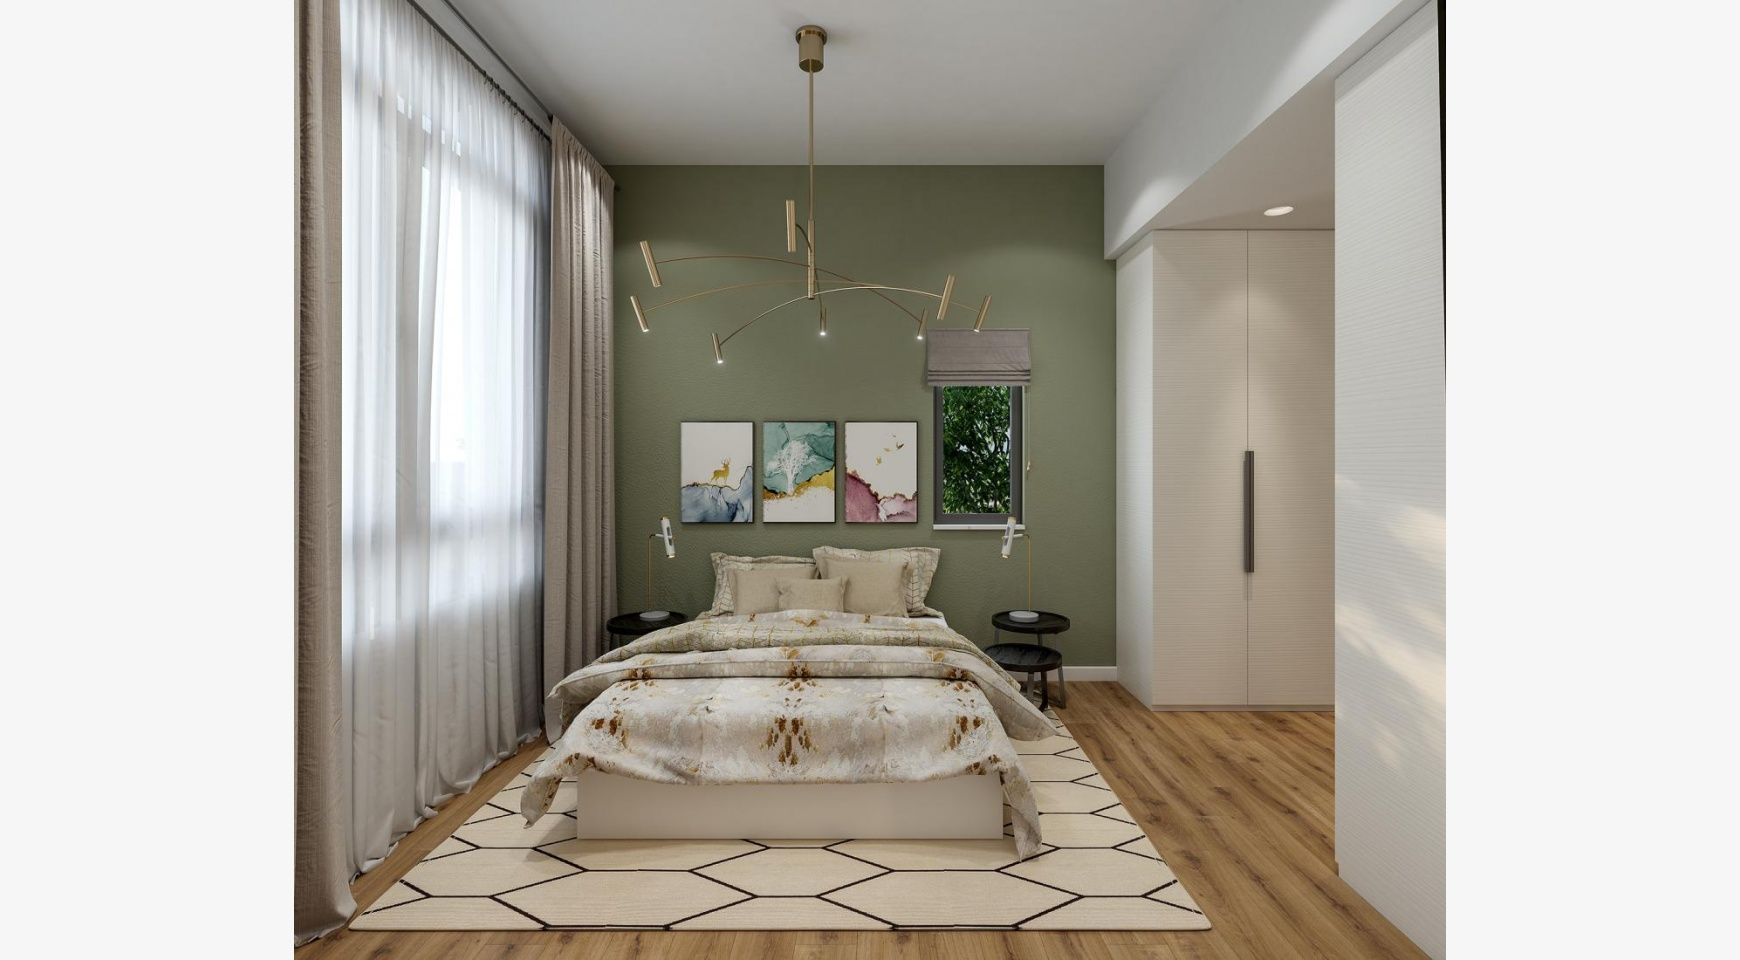 Urban City Residences, Block B. New Spacious 2 Bedroom Apartment 302 in the City Centre - 6